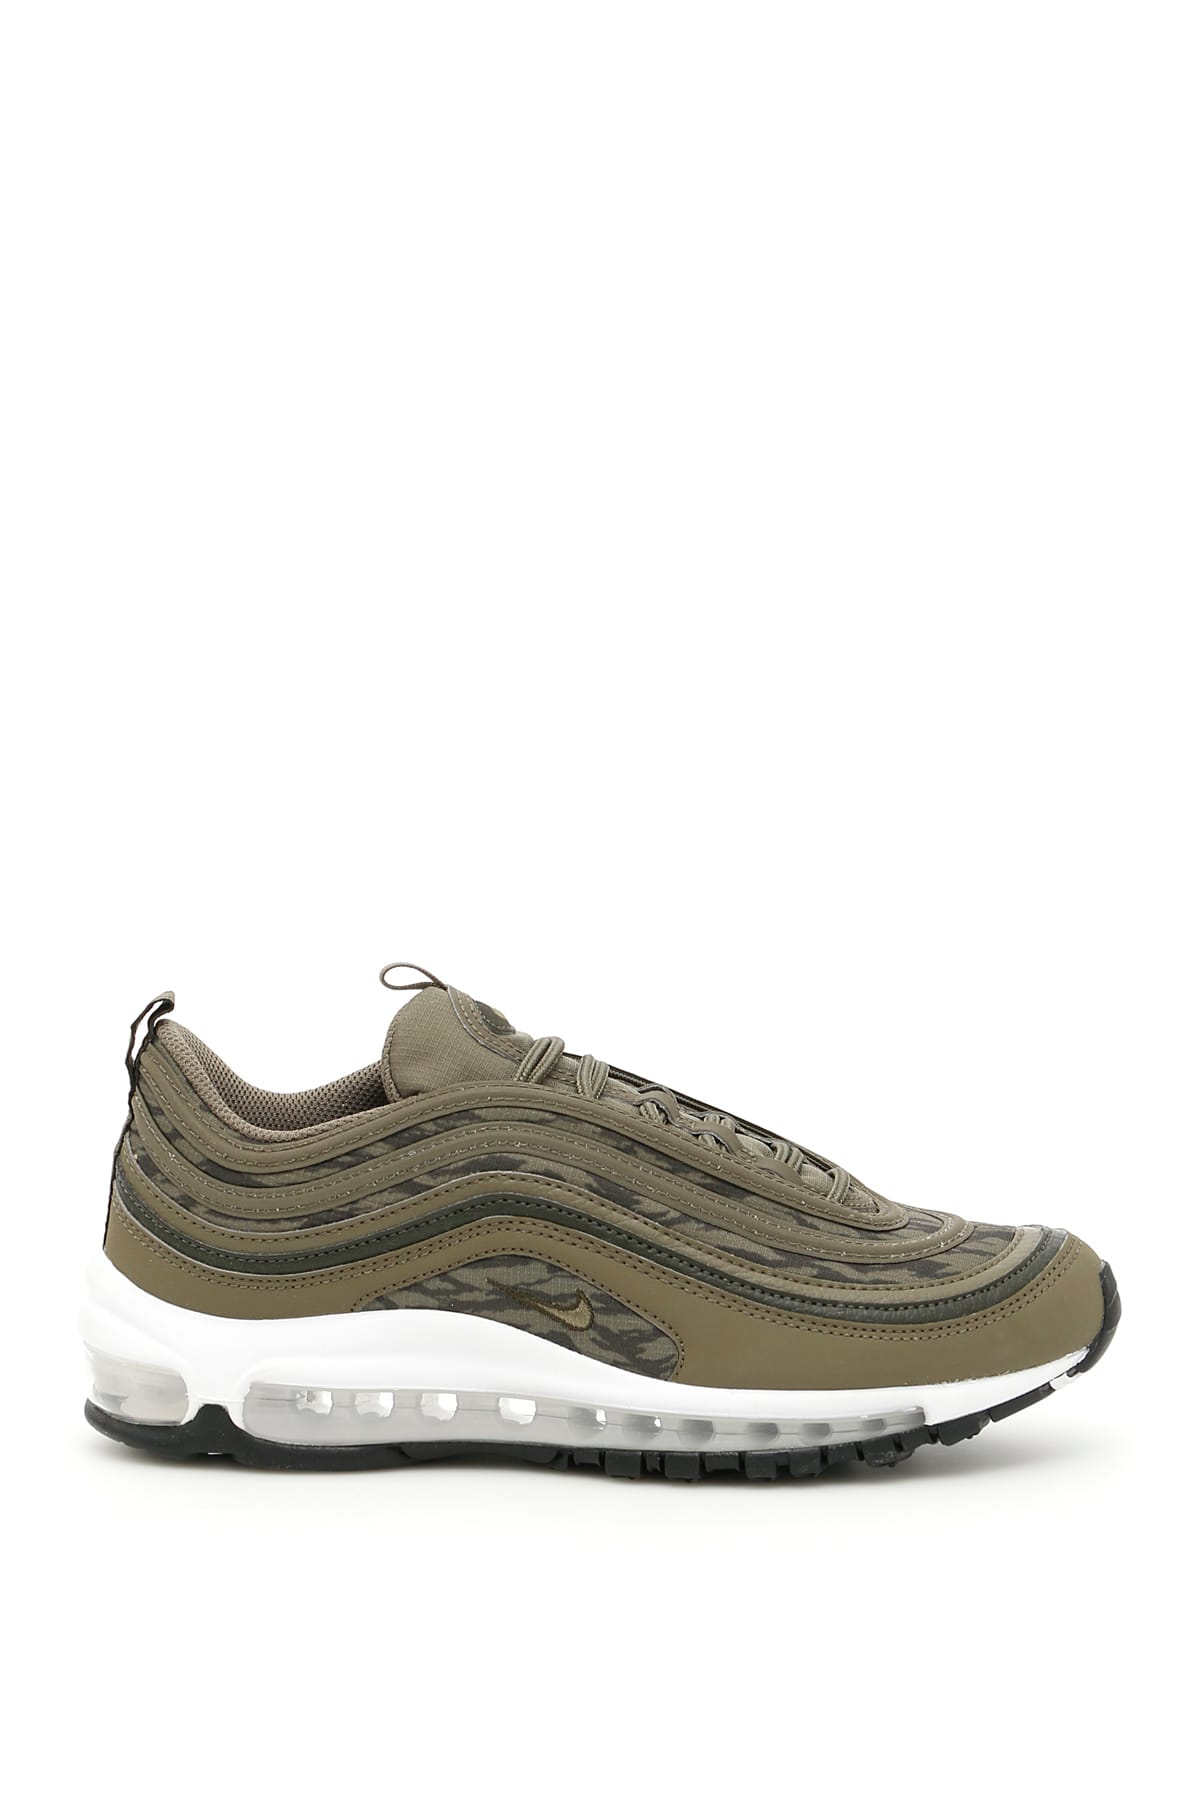 finest selection 9af6e e8b3c Nike Air Max 97 Aop Sneakers